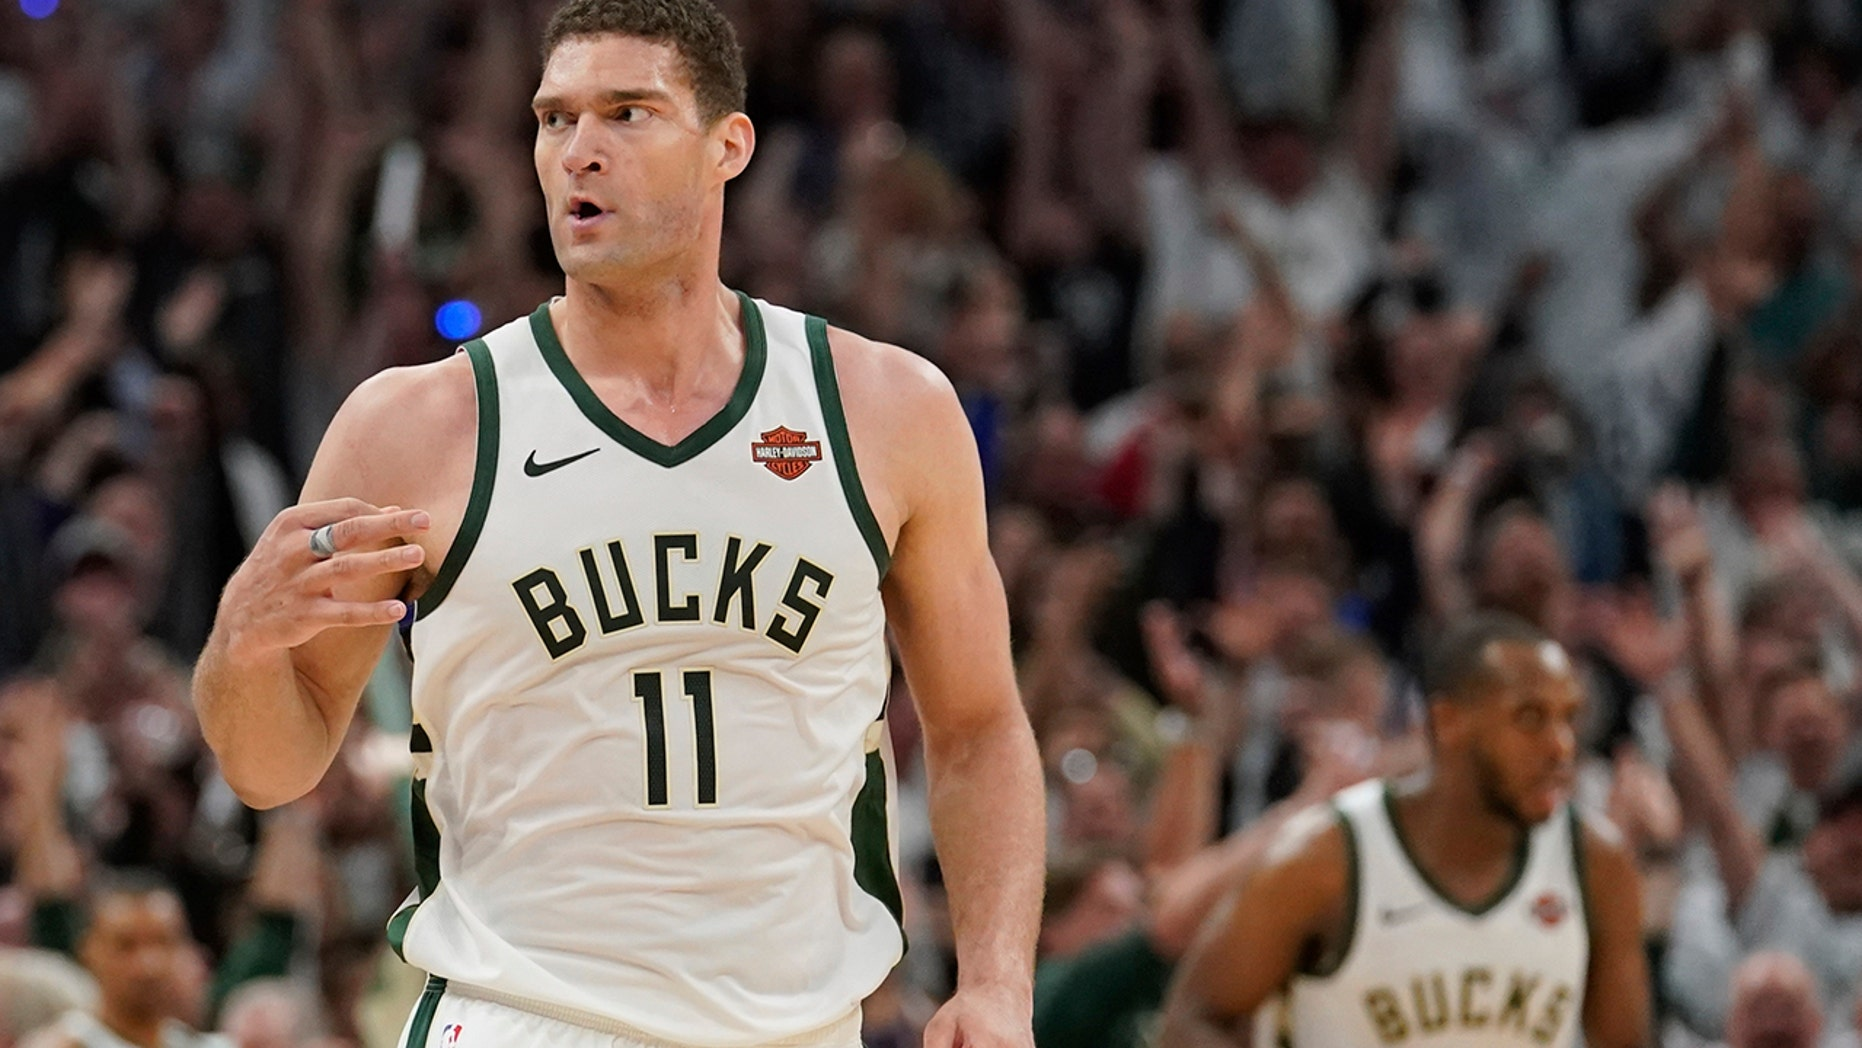 Milwaukee Bucks' Brook Lopez reacts to his three-point basket during the second half of Game 1 of the NBA Eastern Conference basketball playoff finals against the Toronto Raptors Wednesday, May 15, 2019, in Milwaukee. The Bucks won 108-100 to take a 1-0 lead in the series. (AP Photo/Morry Gash)